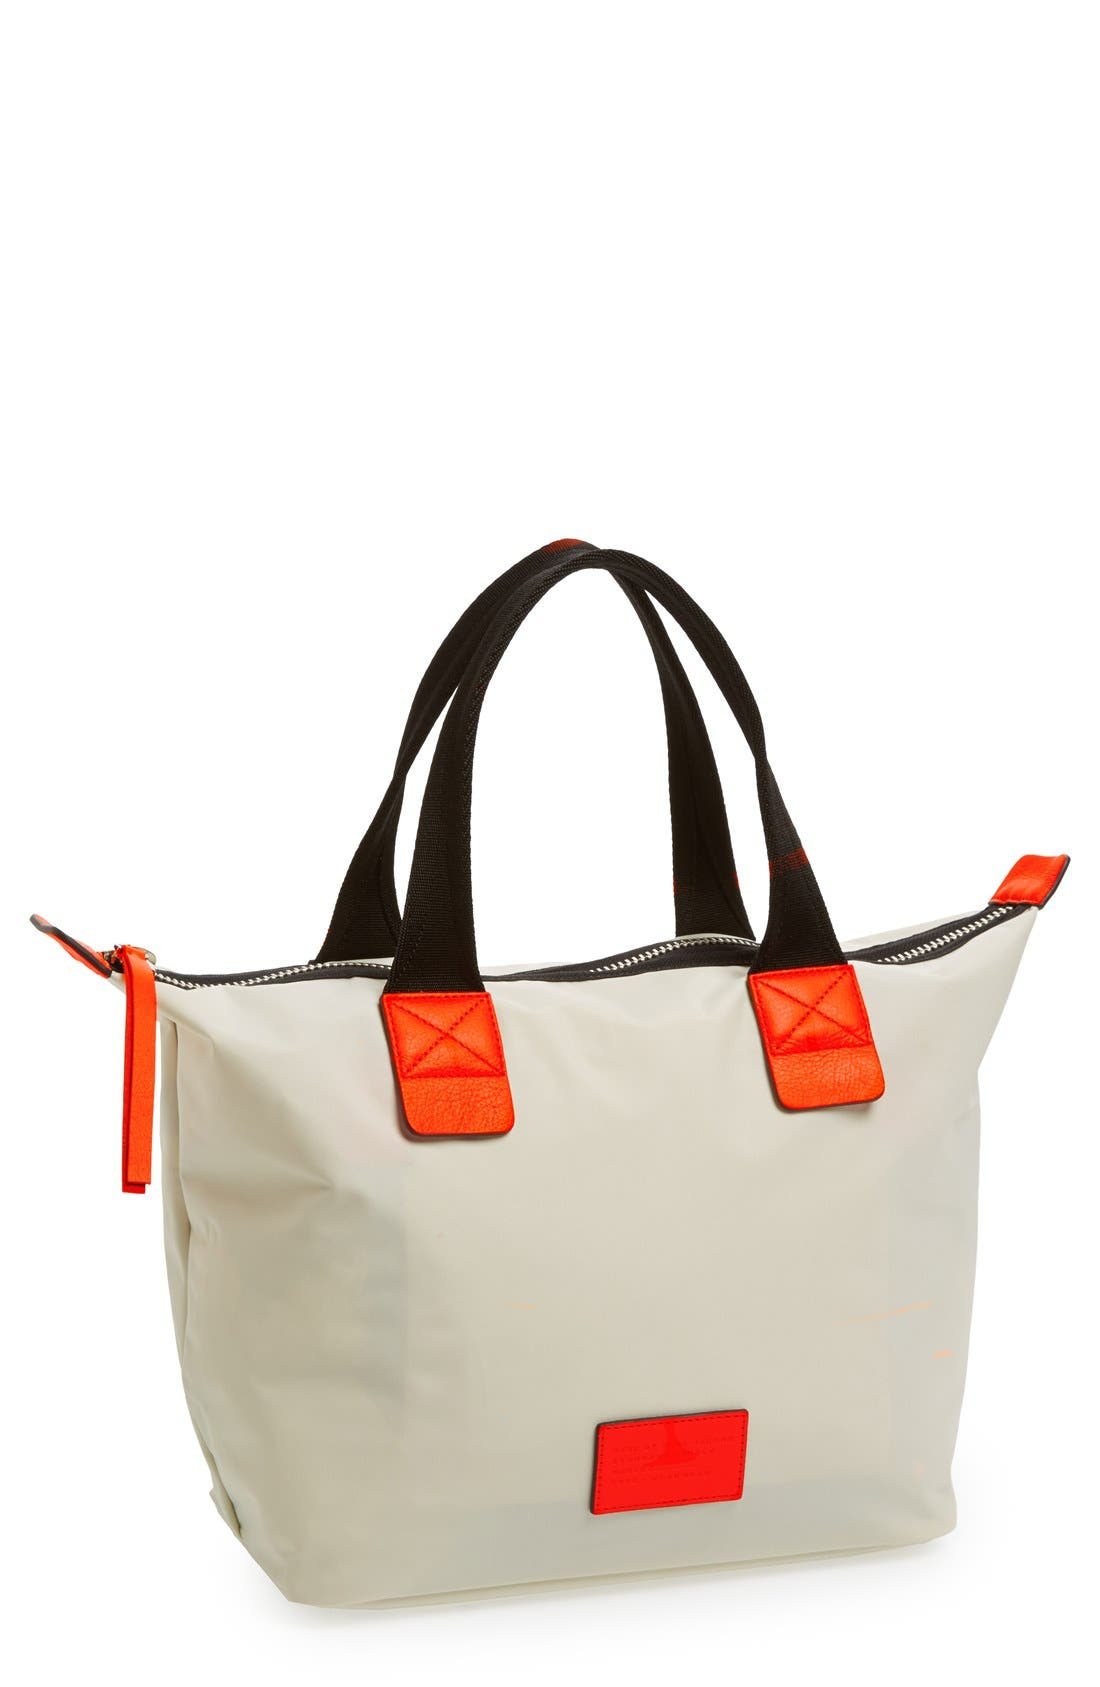 Main Image - MARC BY MARC JACOBS 'Domo Arigato' Tote